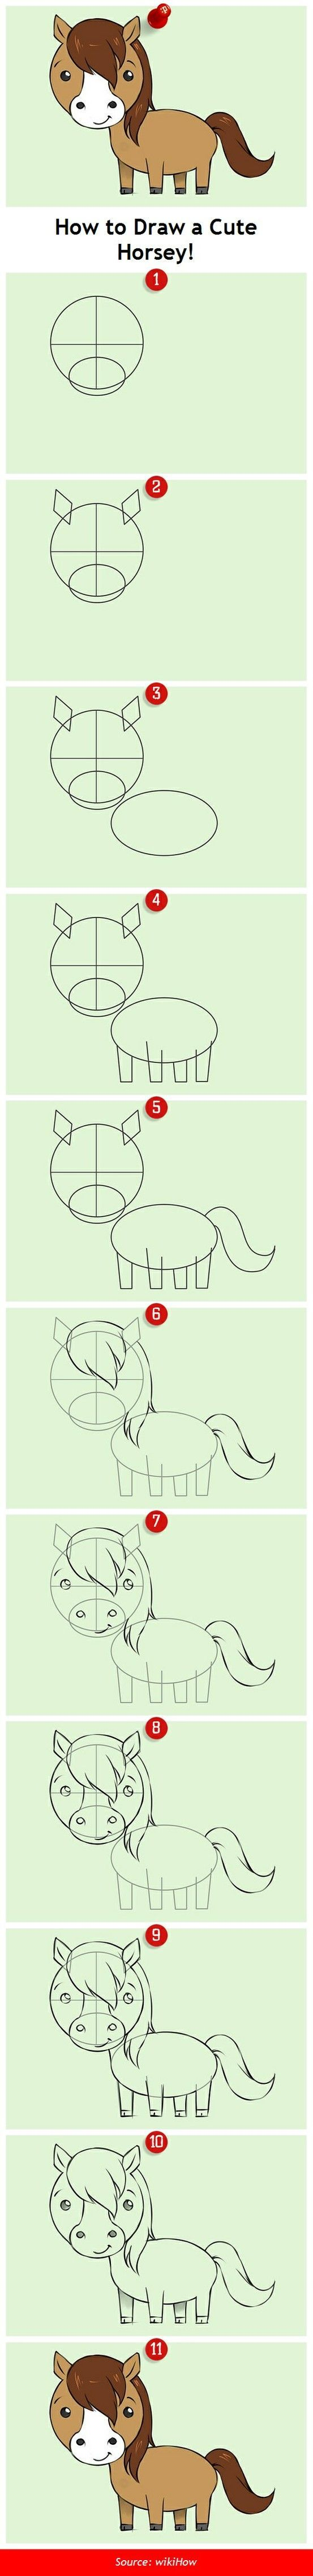 A great way to teach the kids to draw and keep them entertained whilst you are studying. #usq #ideasforthekids #studytime